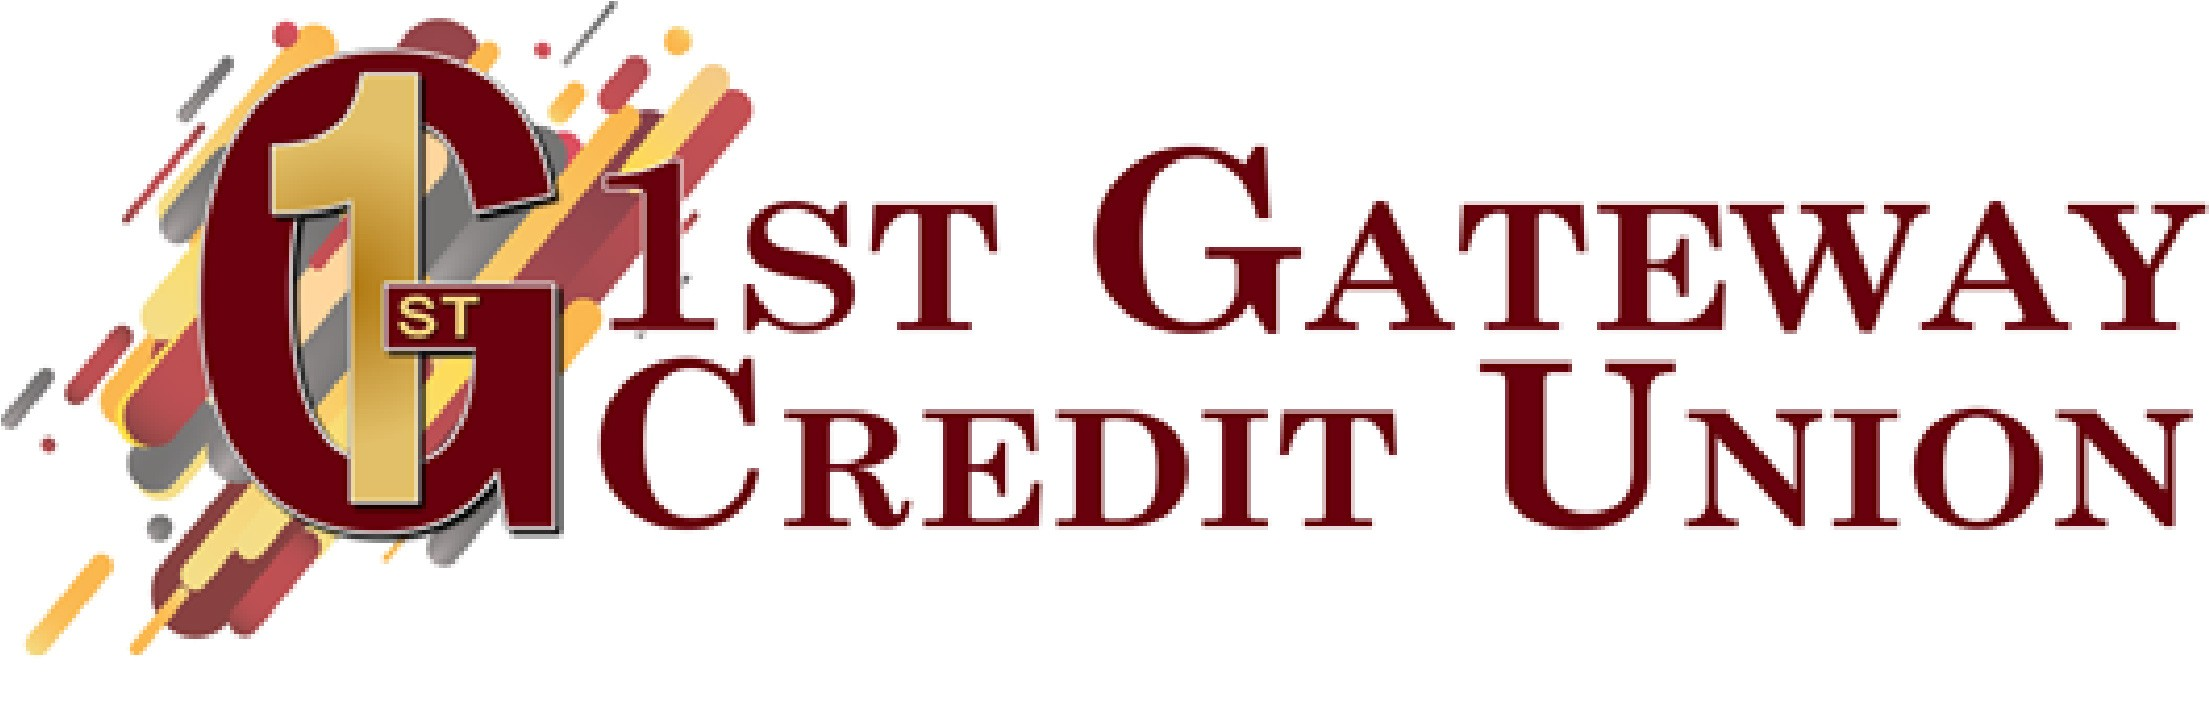 1st. Gateway Credit Union Joins CUAC